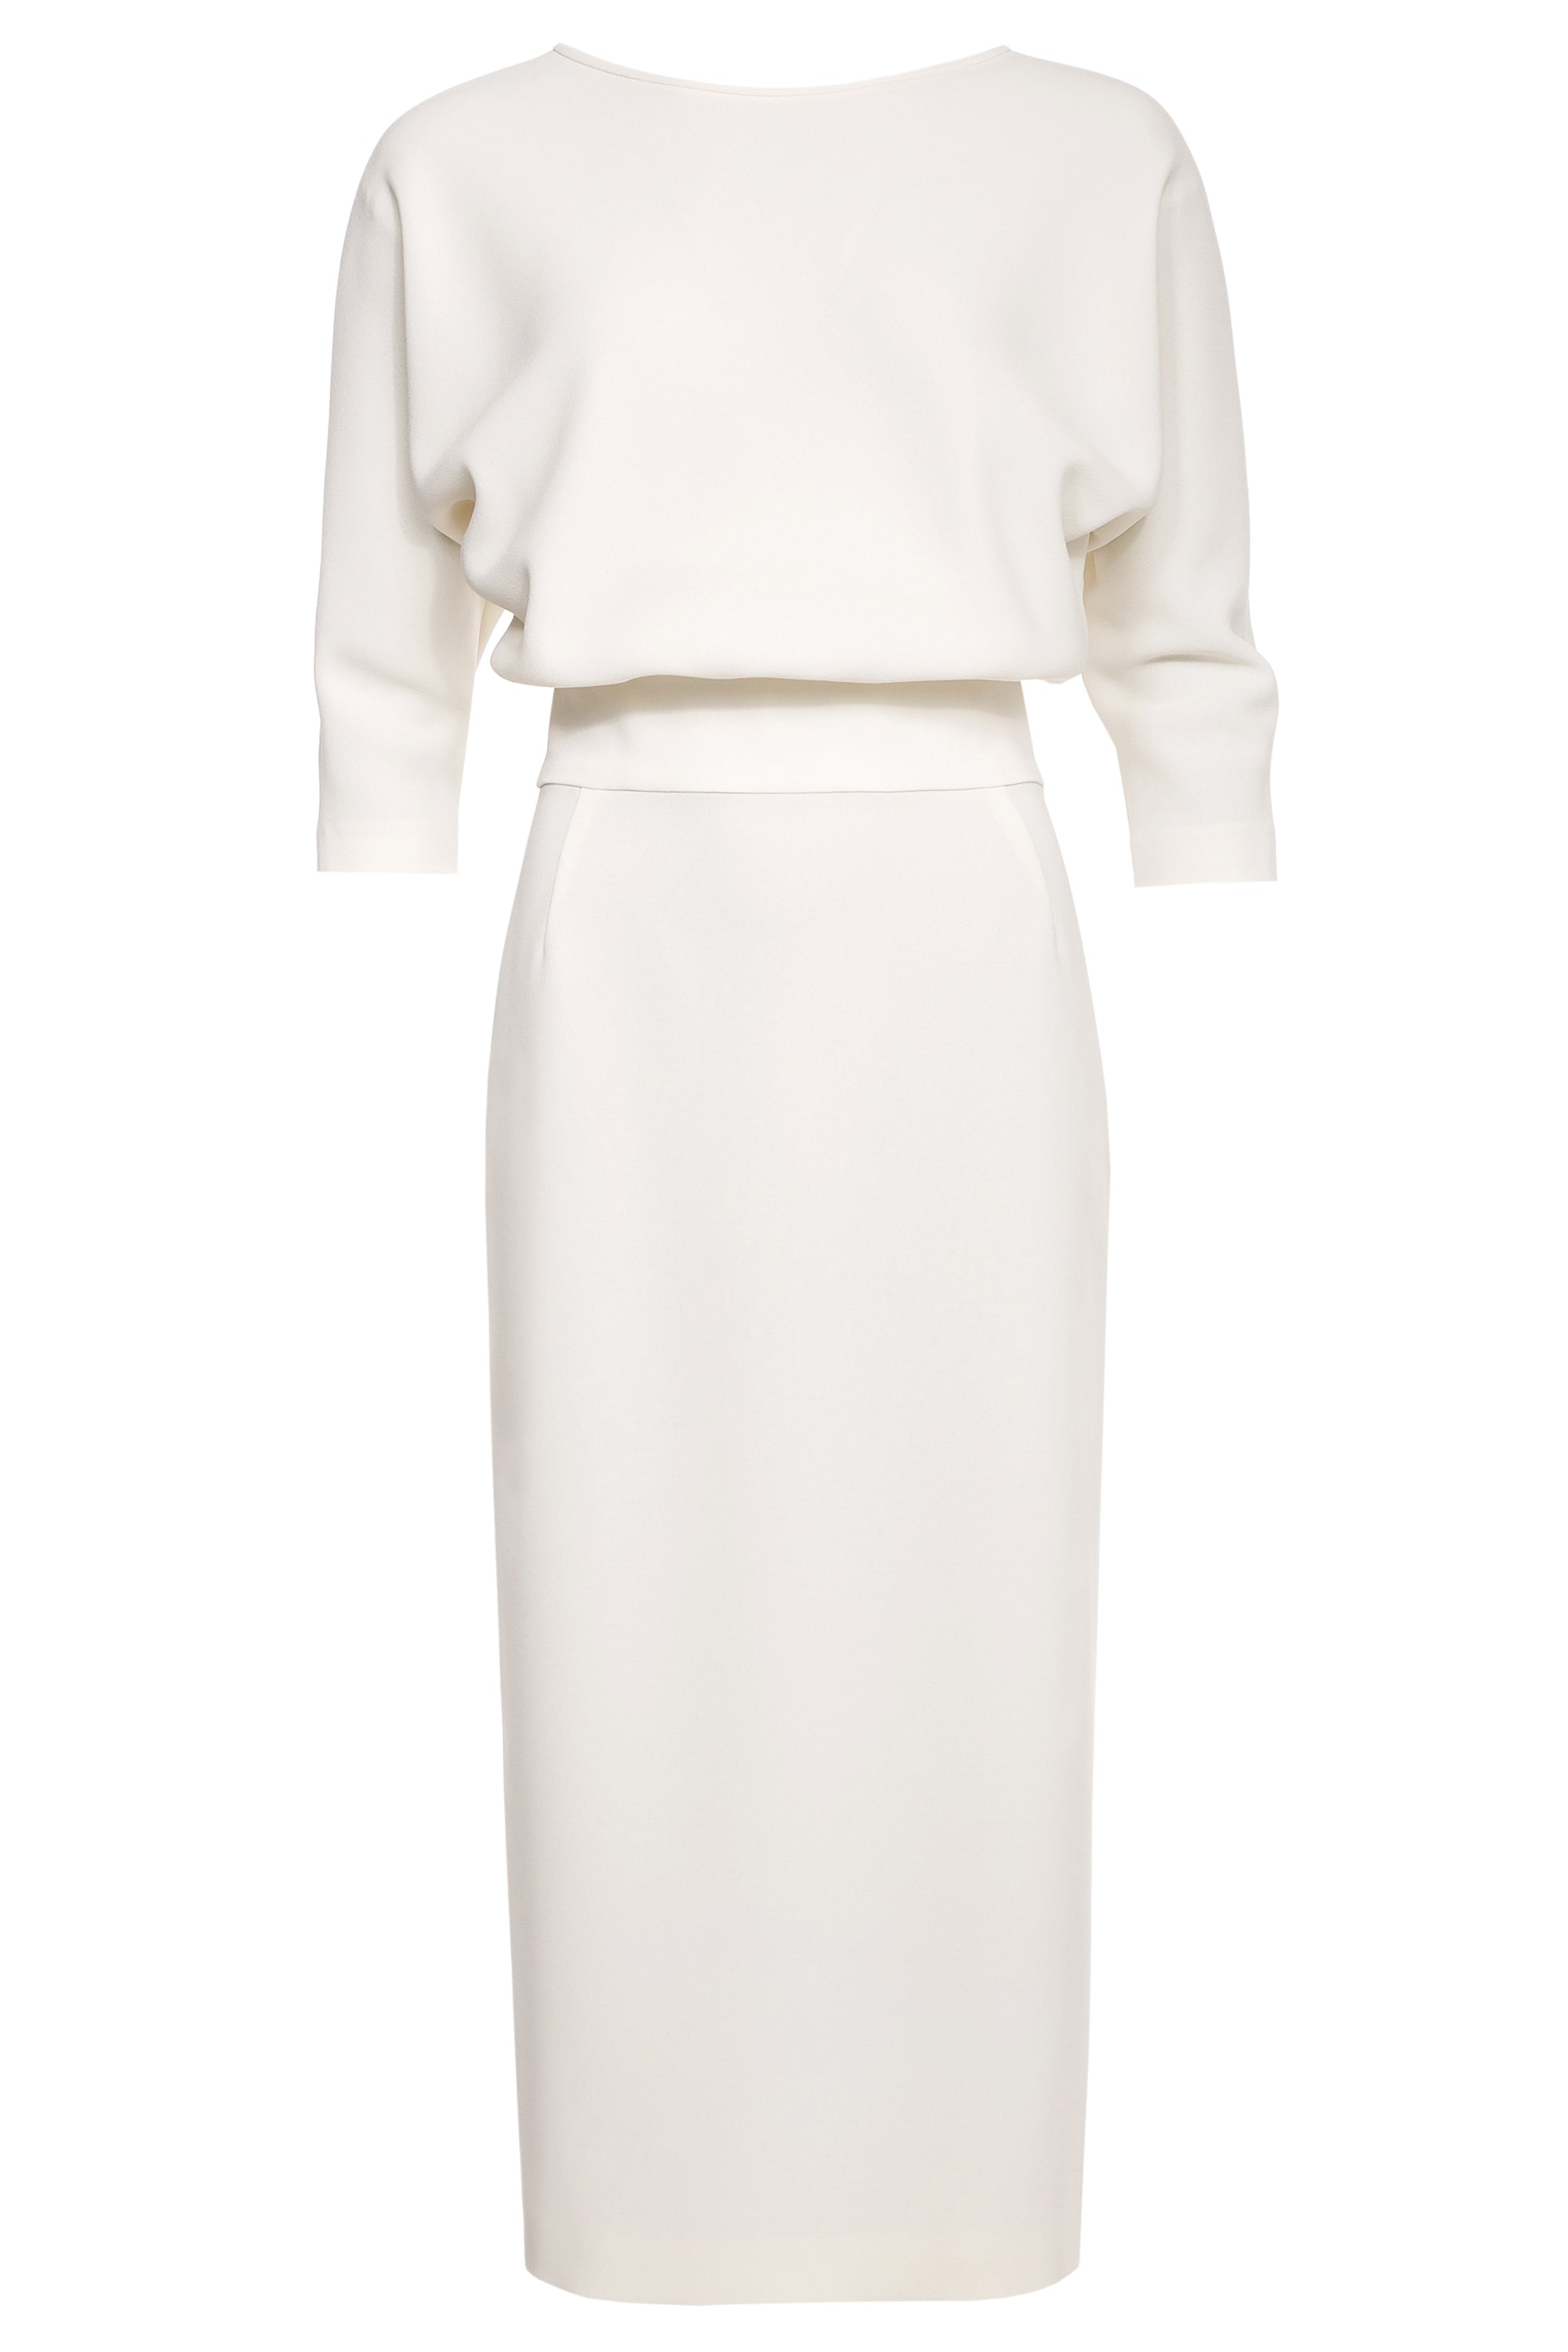 Adele Long Sleeve Midi Dress